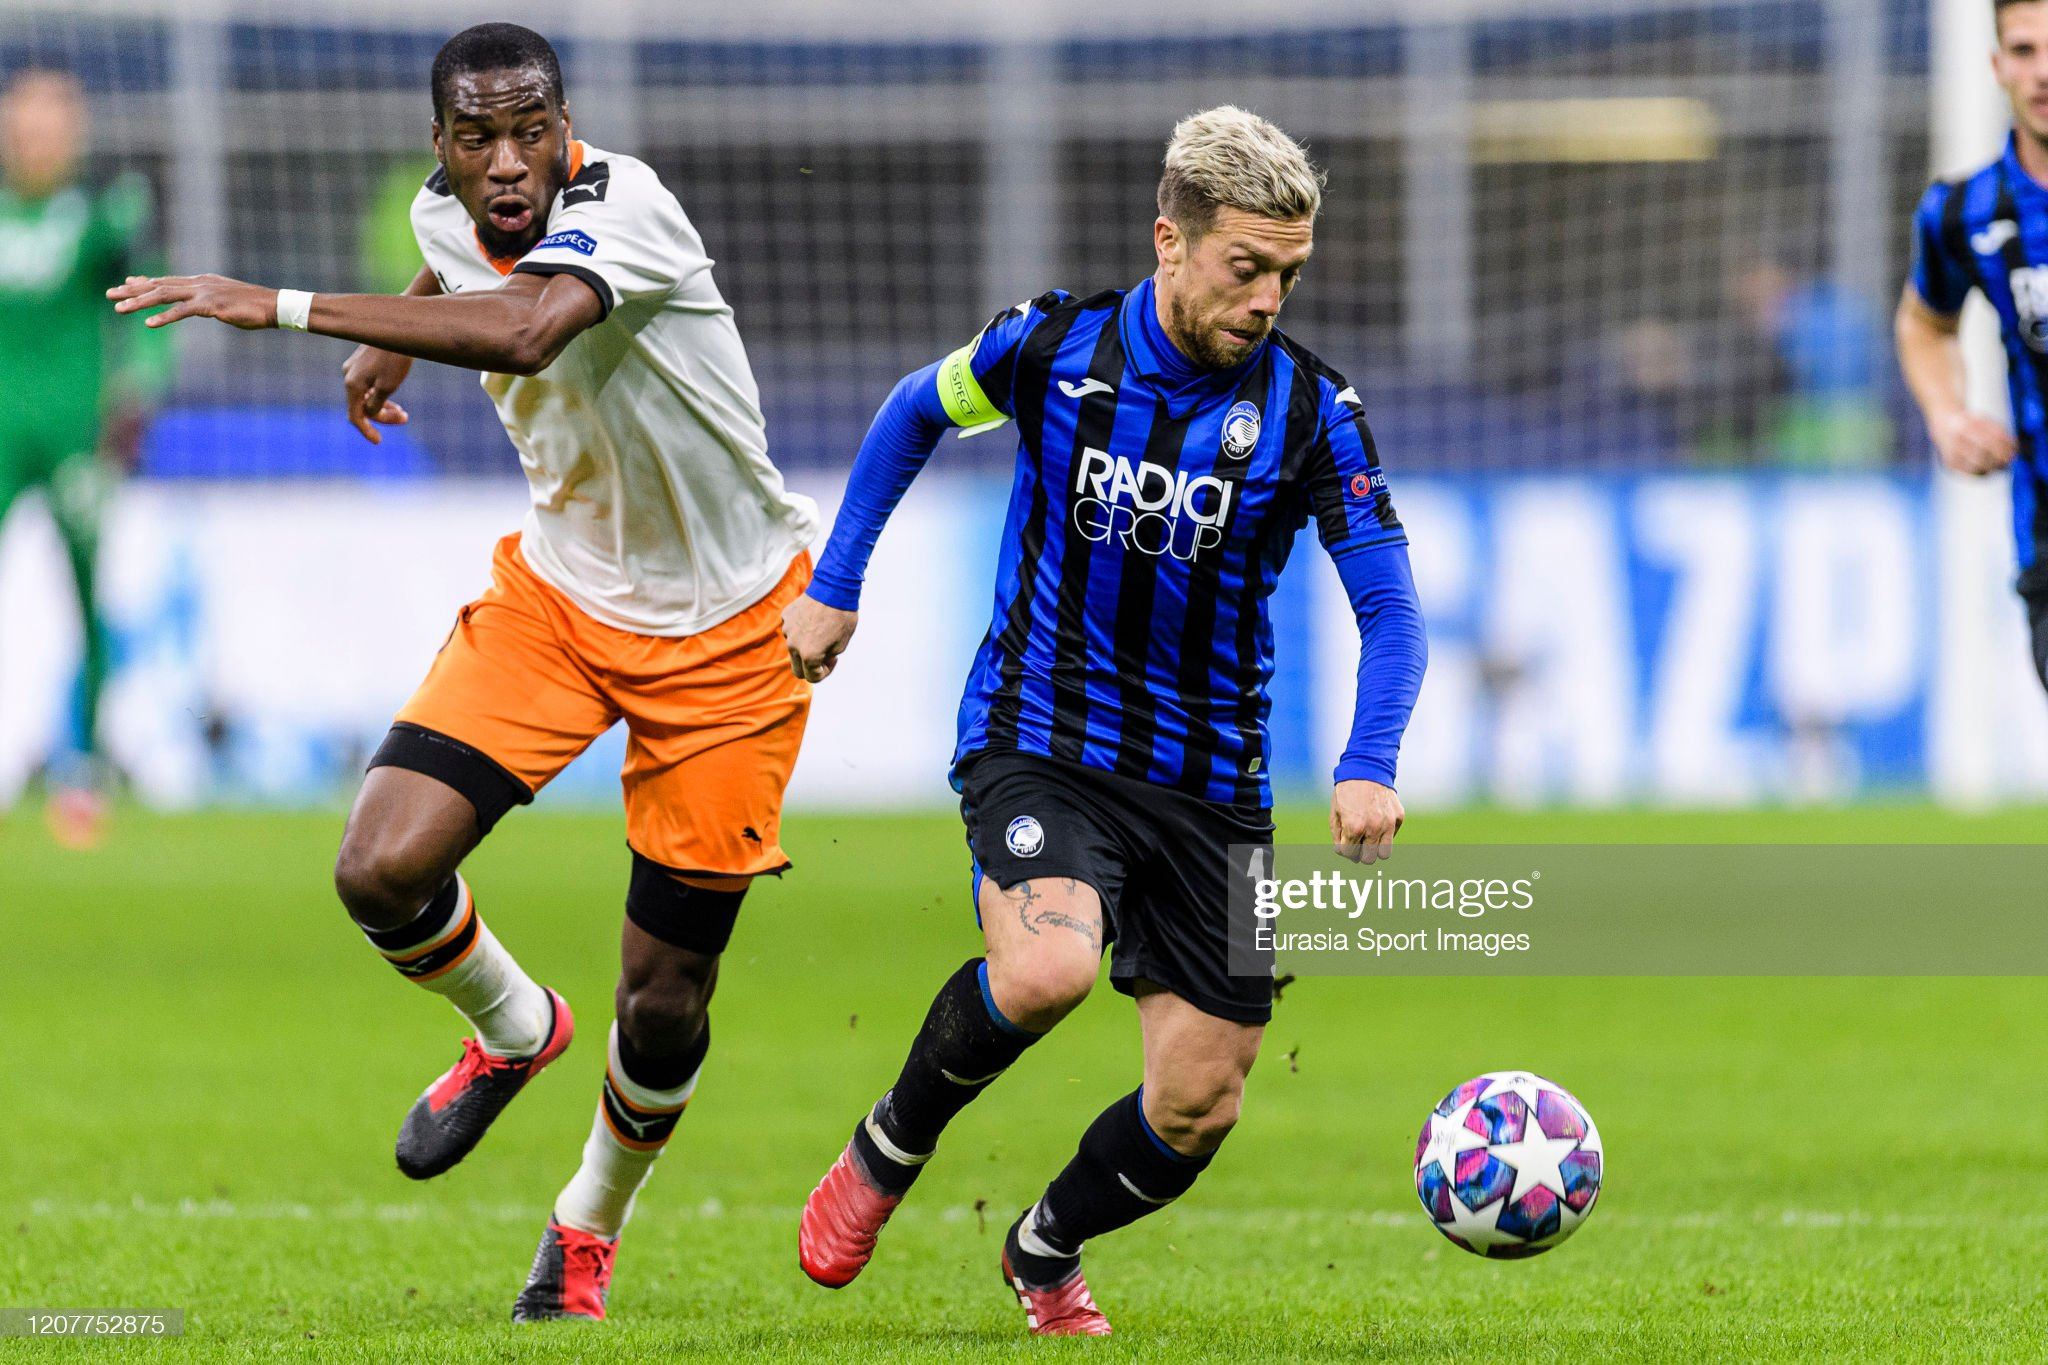 Valencia v Atalanta Preview, prediction and odds